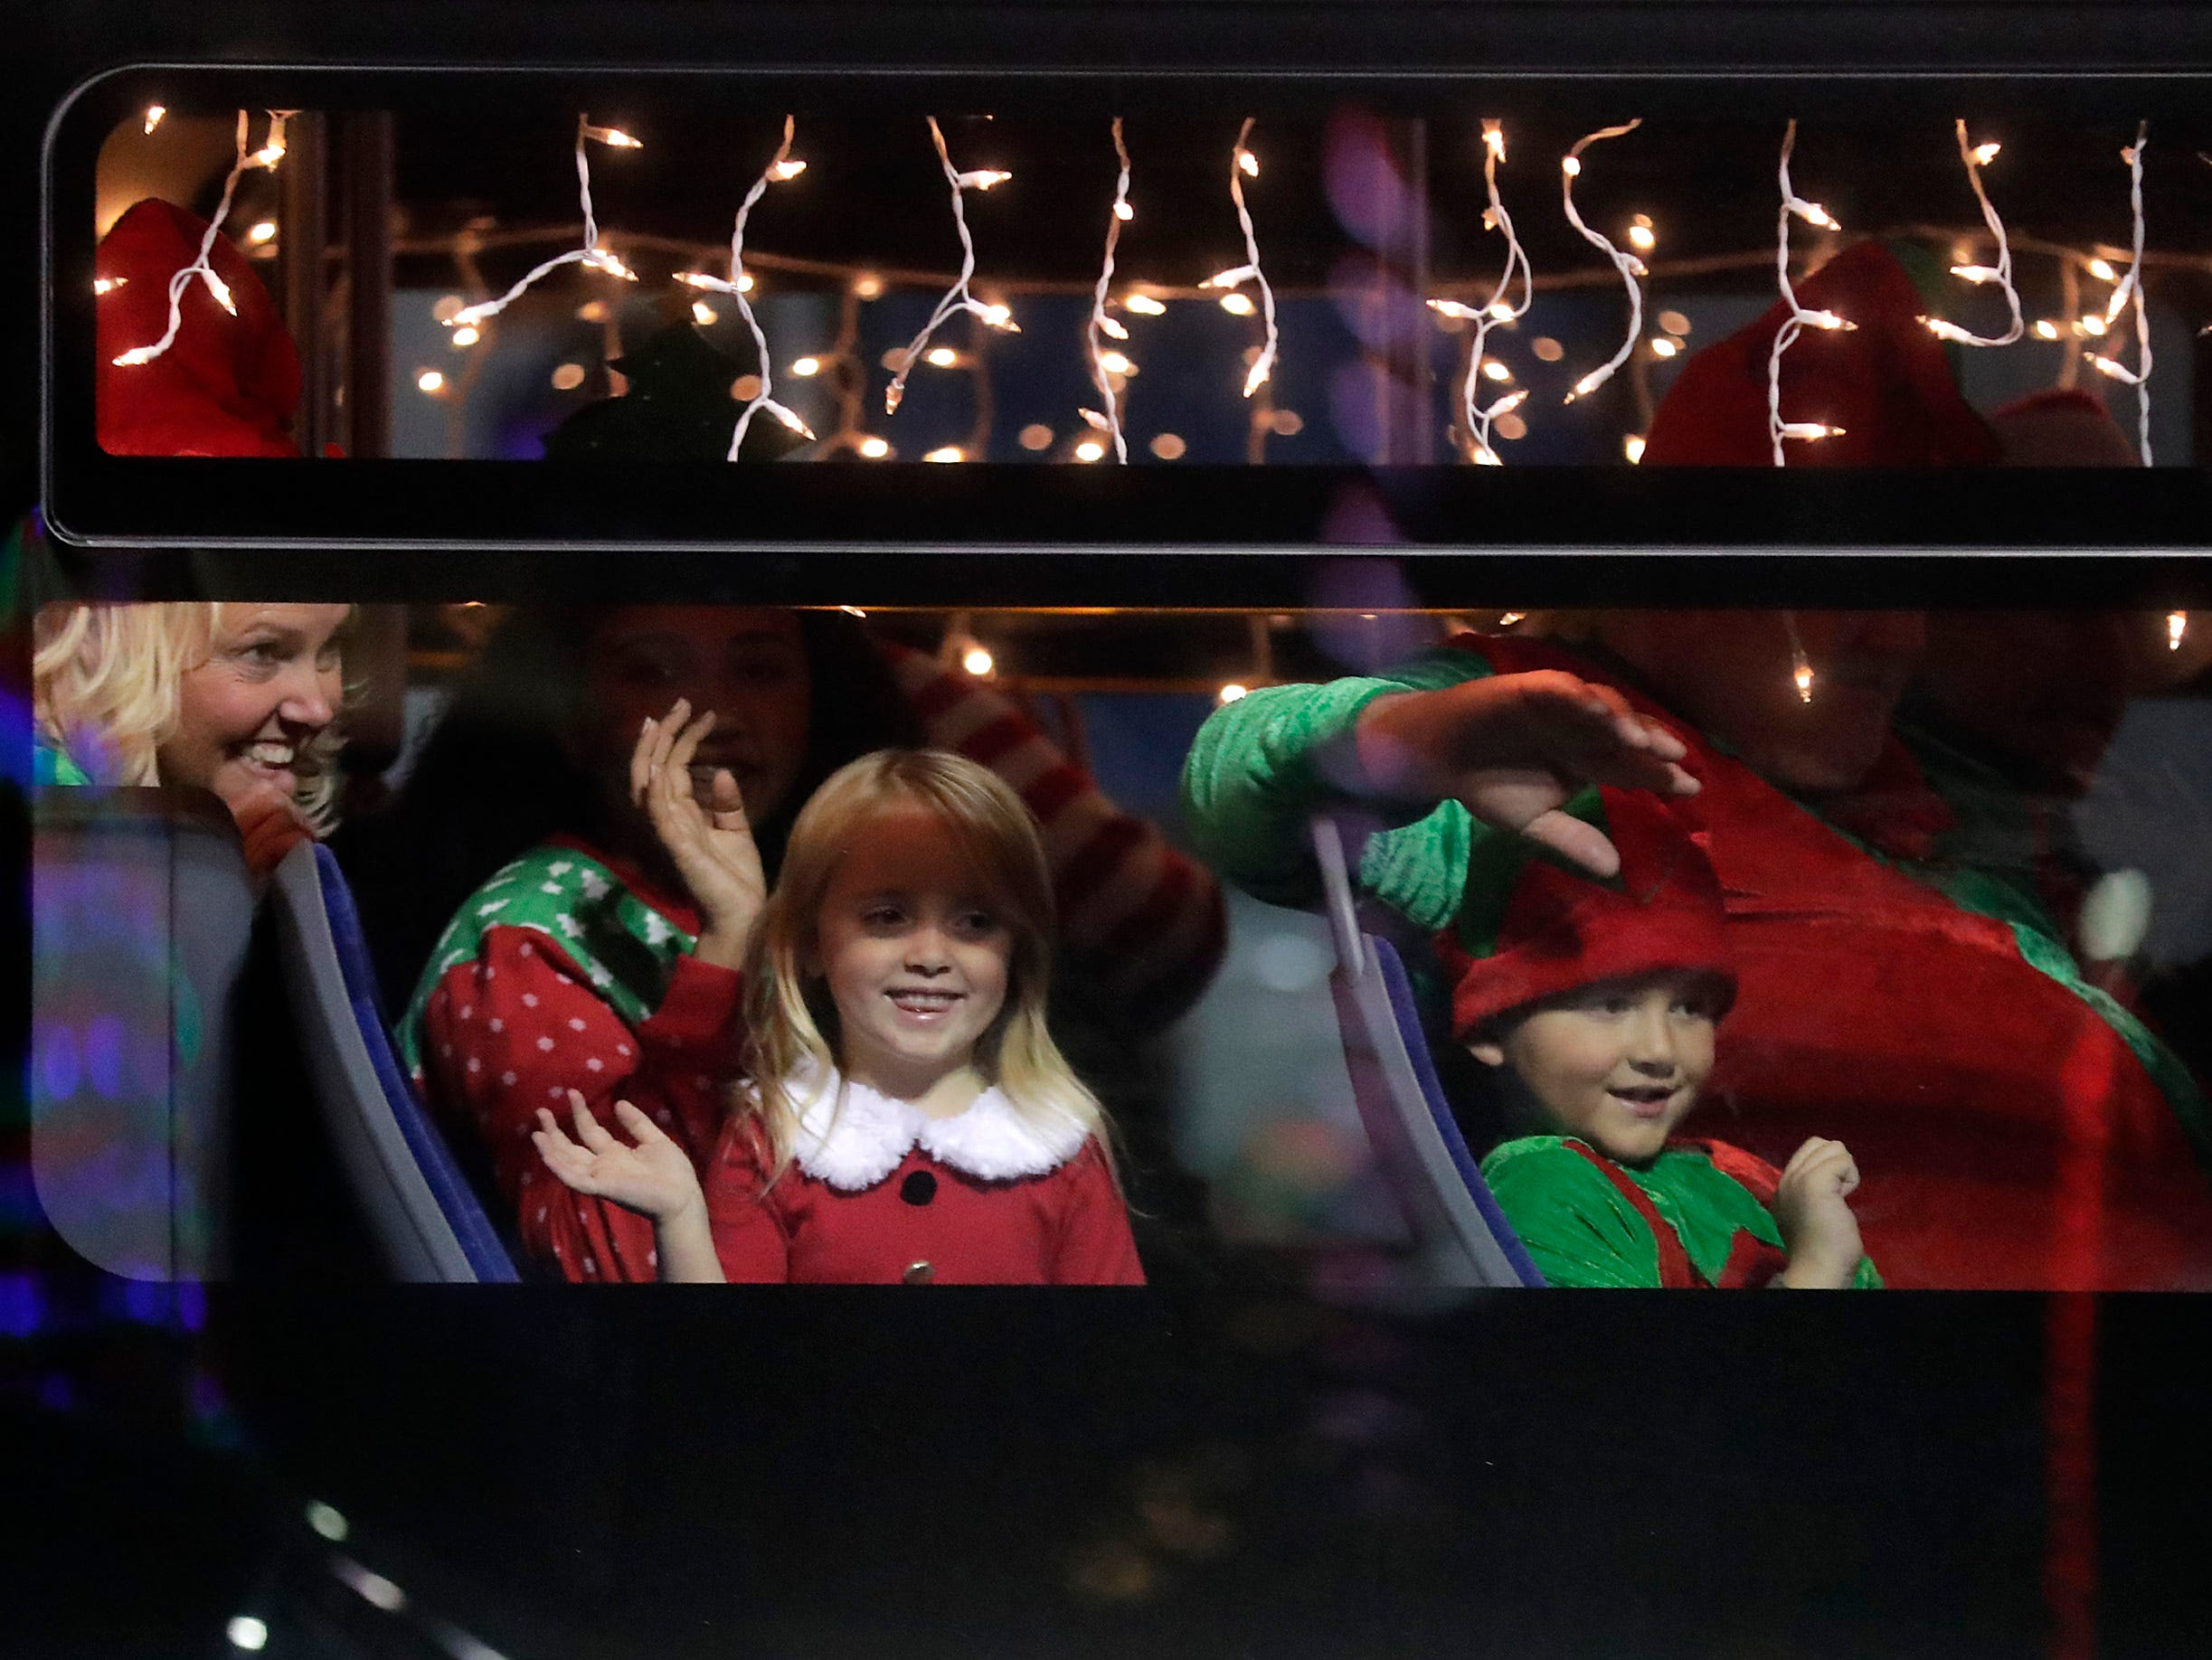 """Riders on the Valley Transit float/bus wave during the 48th Annual Downtown Appleton Christmas Parade on Tuesday, Nov. 20, 2018 in Appleton, Wis. This year's theme was """"Home for the Holidays."""" Wm. Glasheen/USA TODAY NETWORK-Wisconsin."""